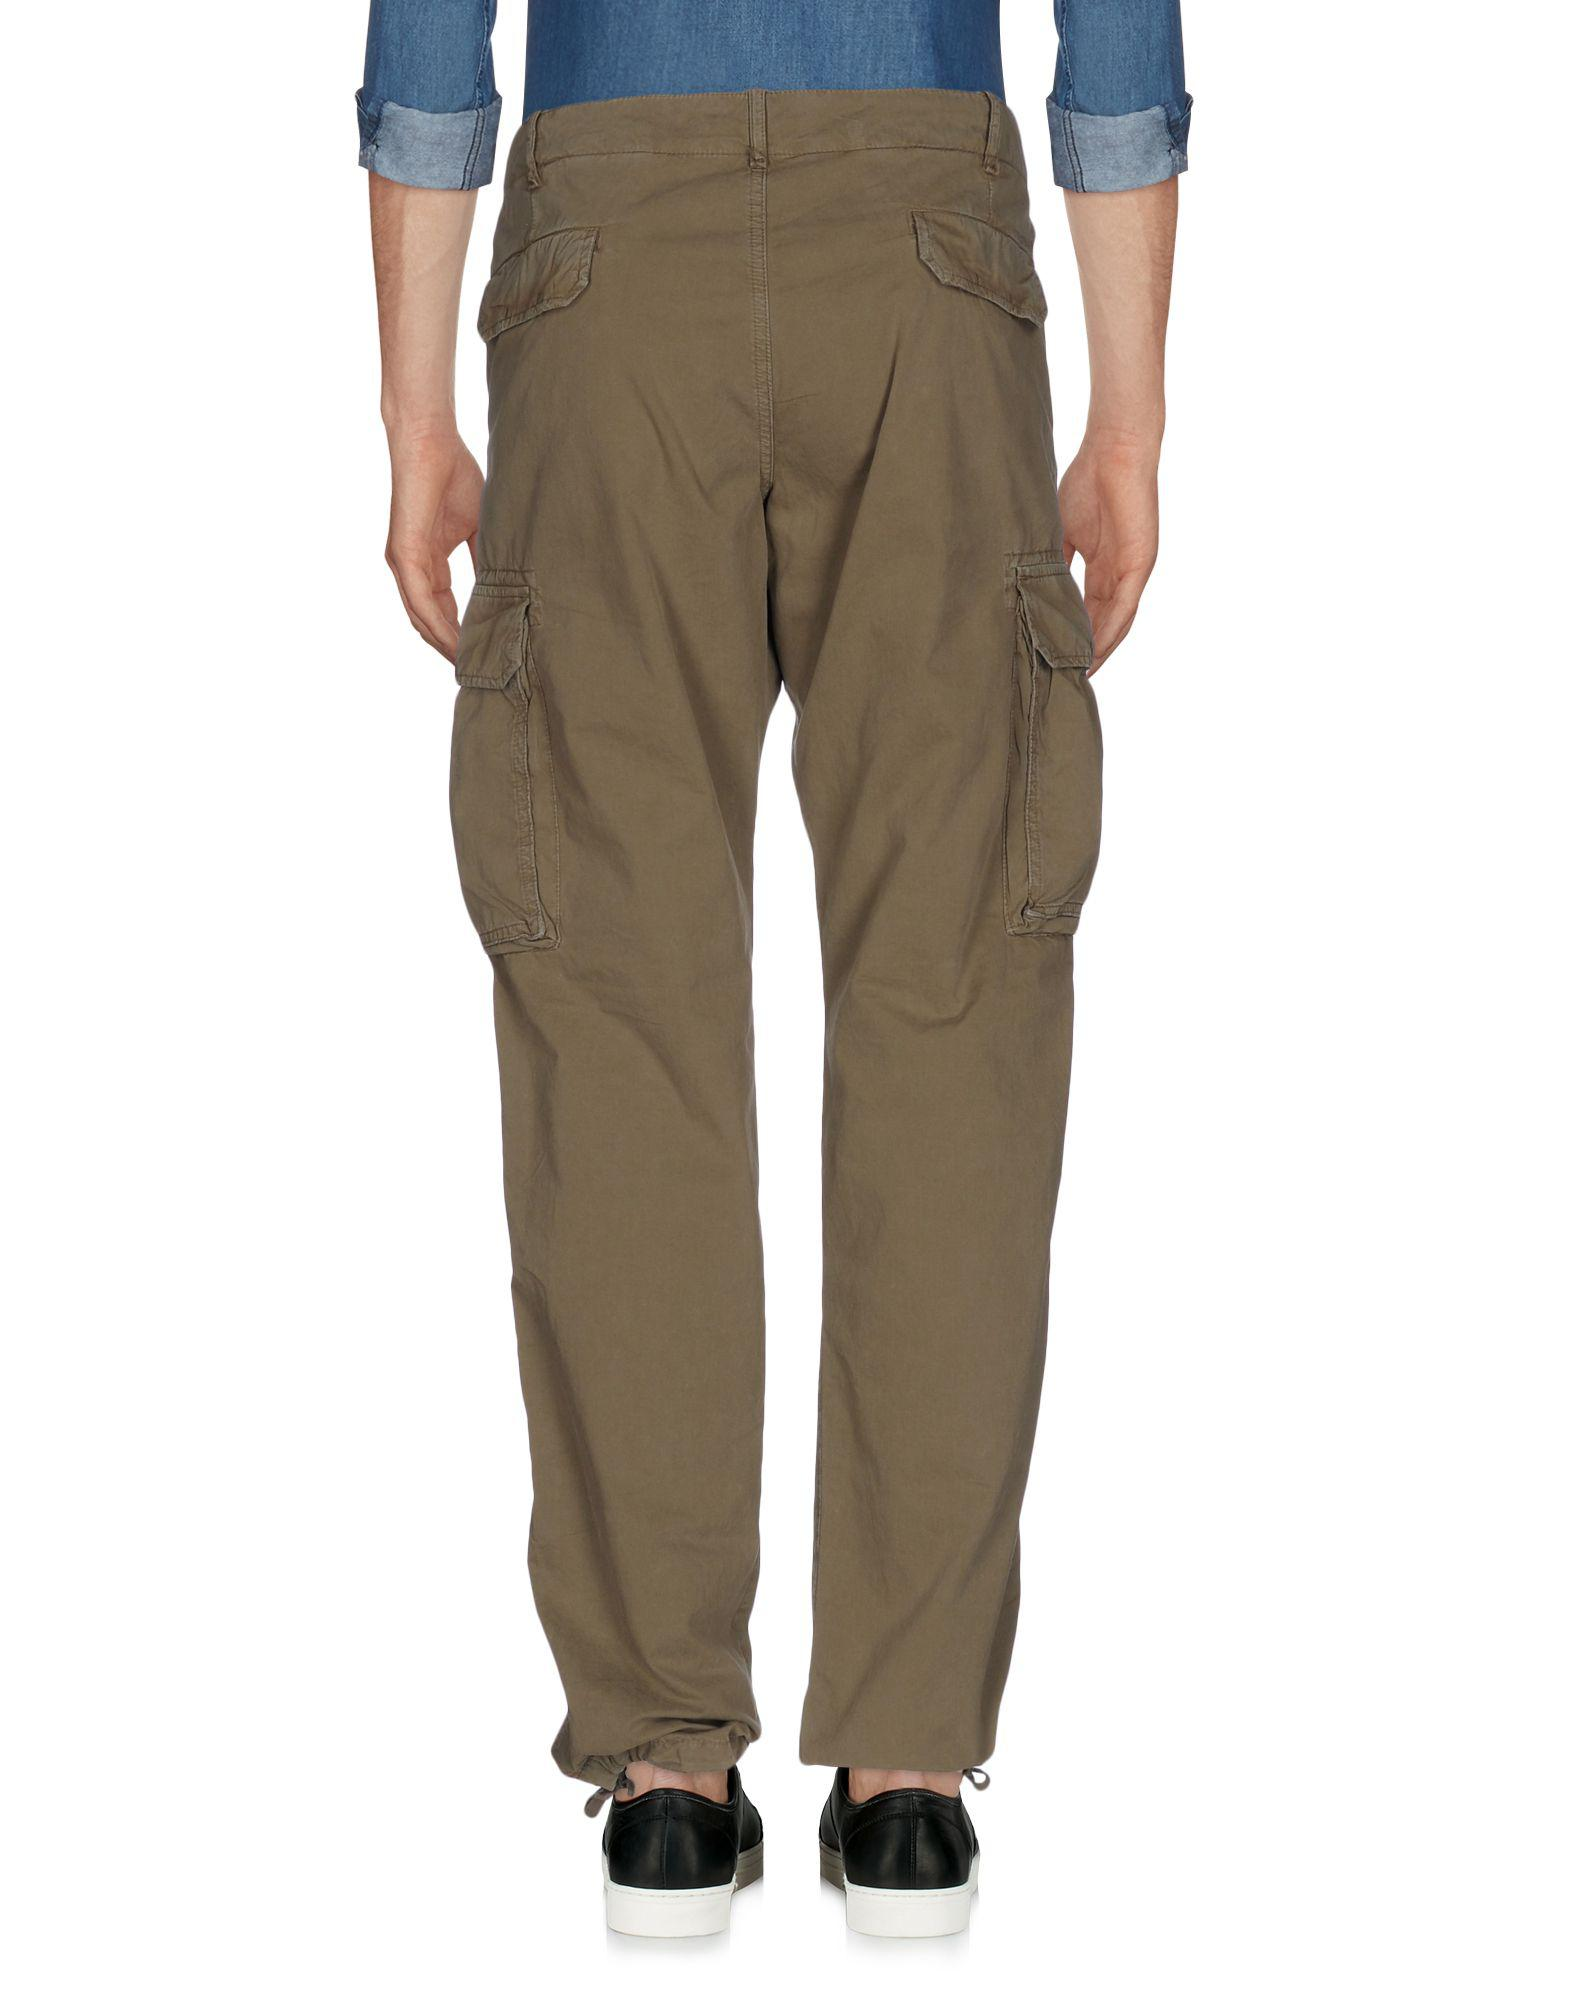 40weft Cotton Casual Trouser for Men